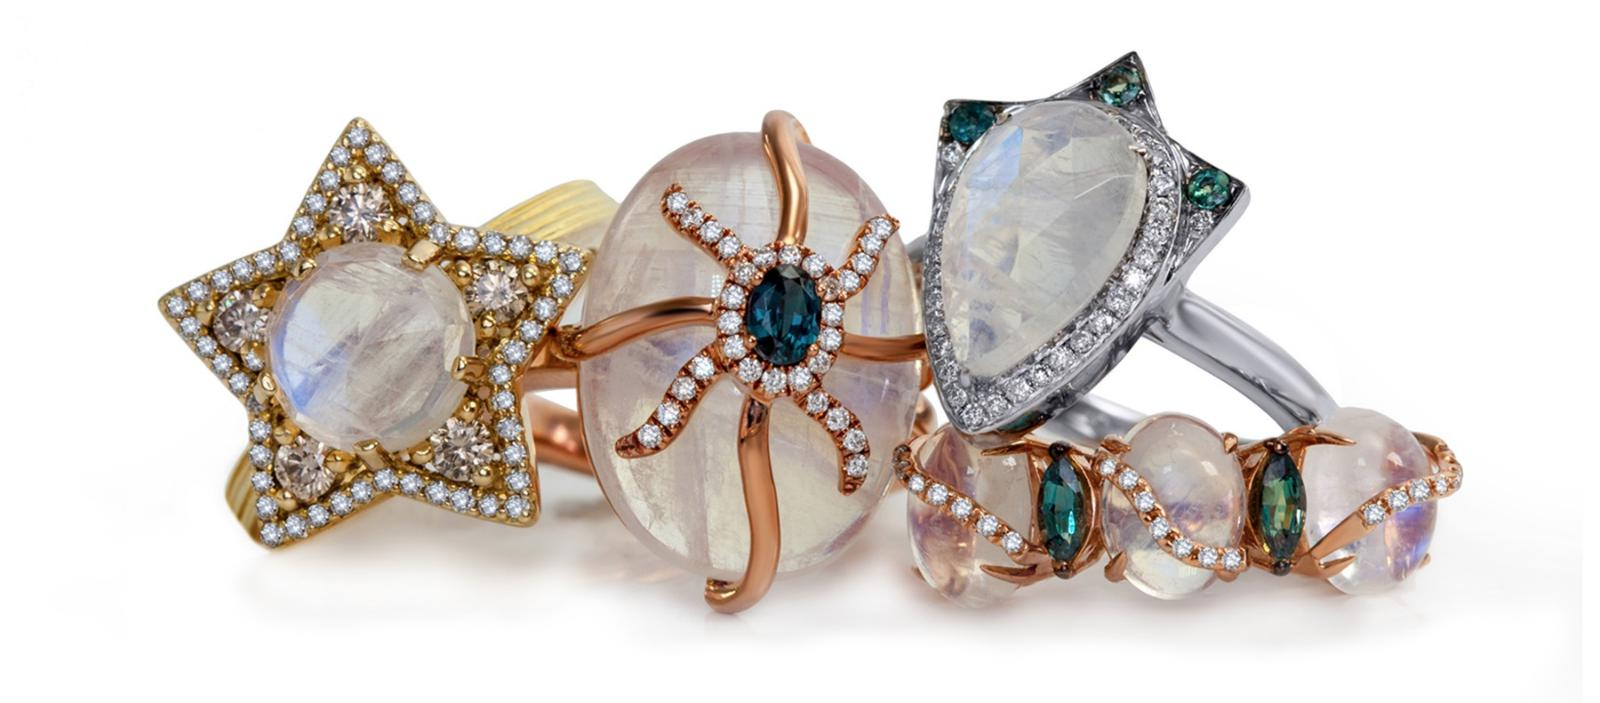 Laura Medine jewelry brand rings